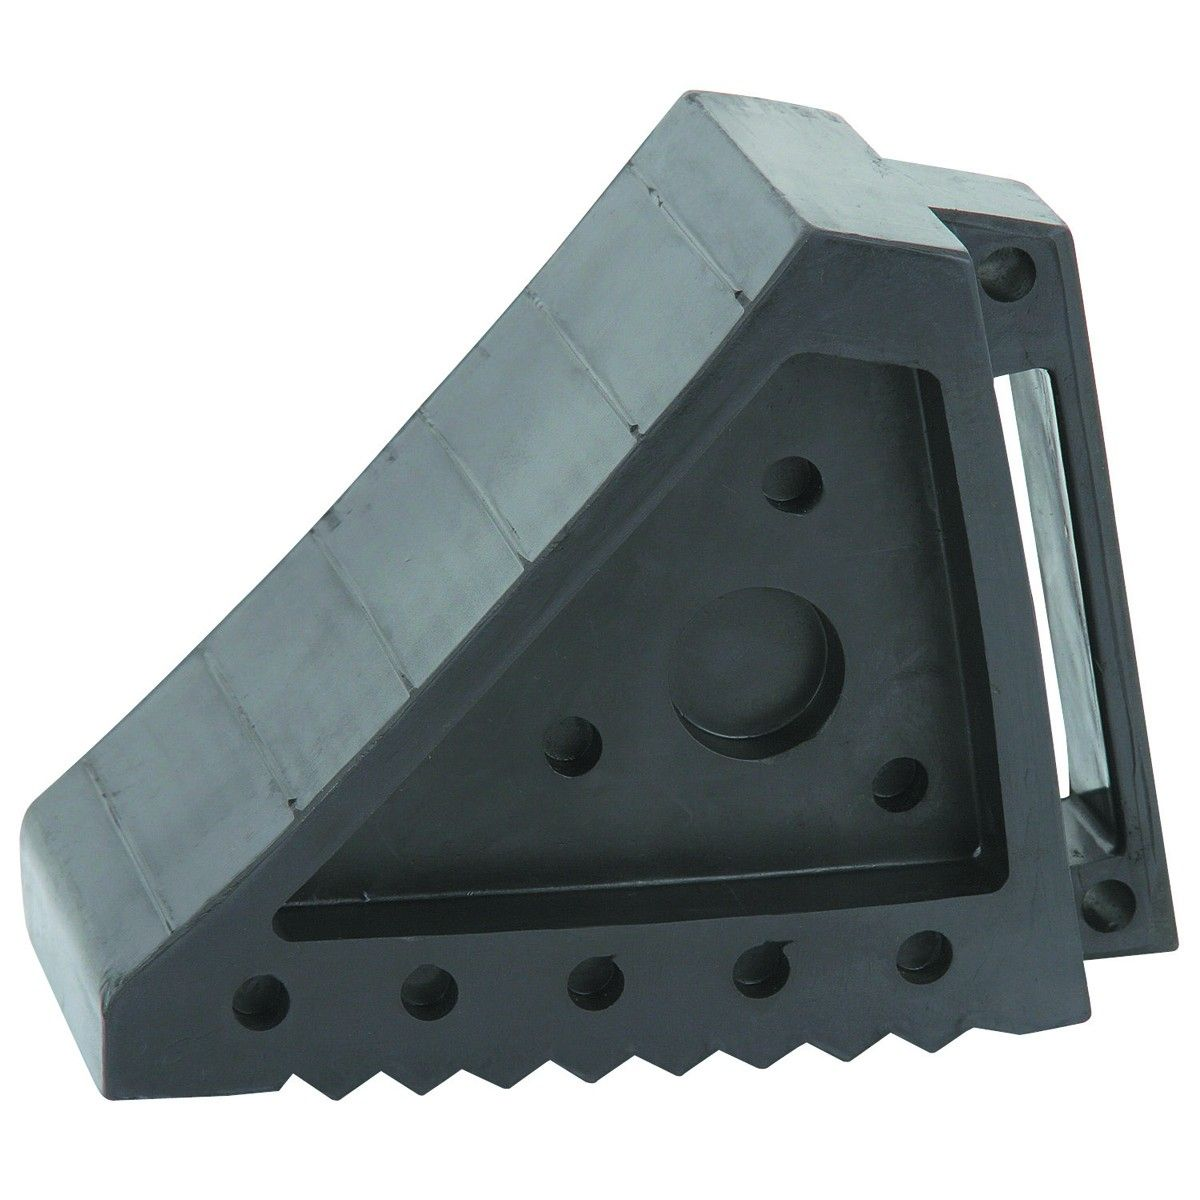 Solid Rubber Wheel Chock Harbor freight tools, Car